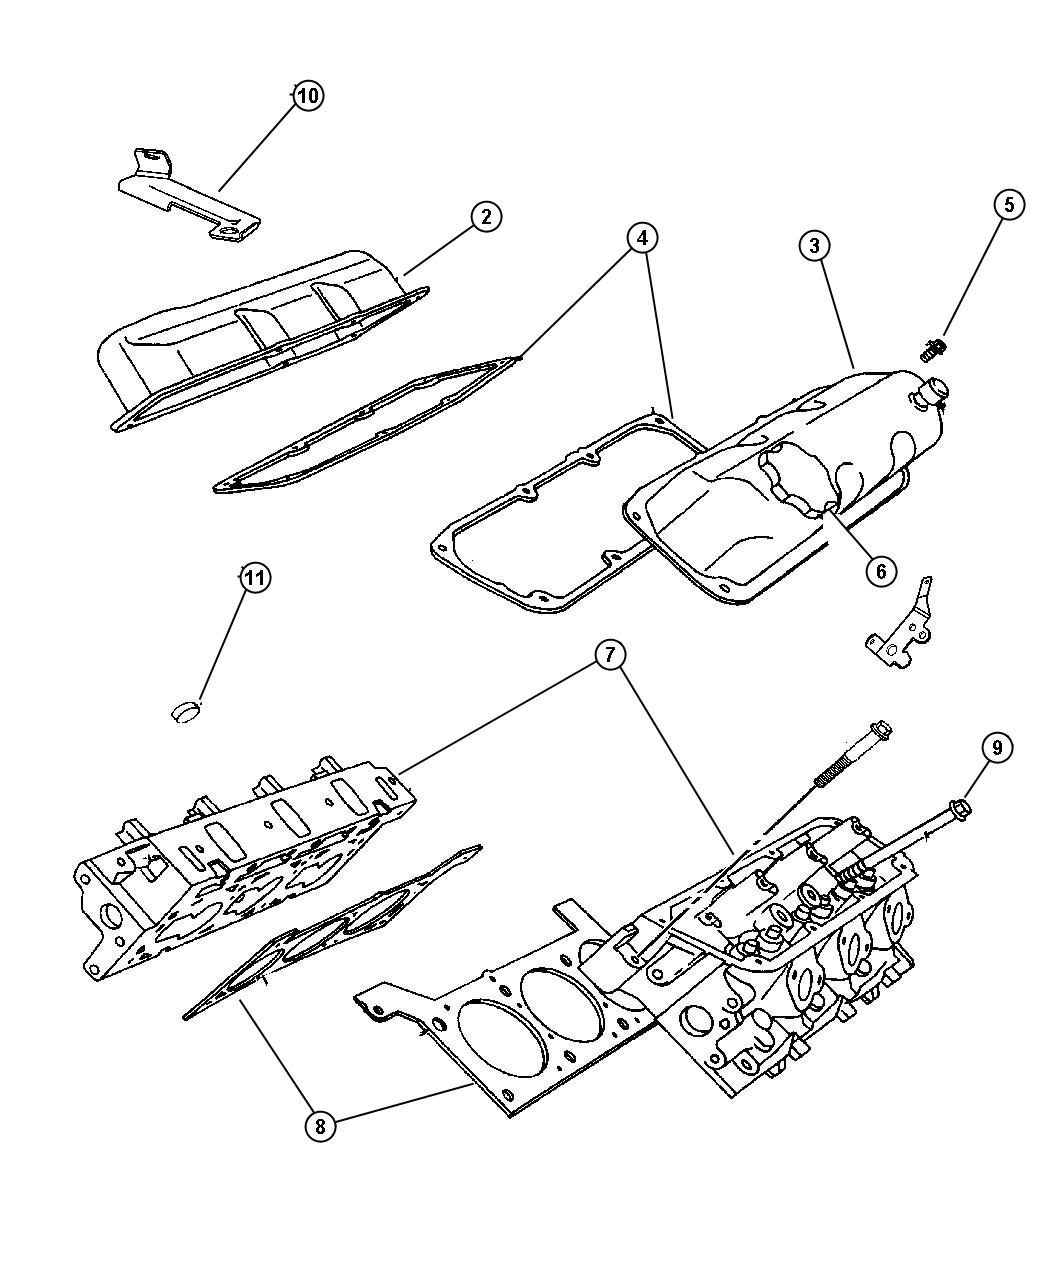 Cylinder Head 3.8L [Engine - 3.8L V6 OHV]. Diagram